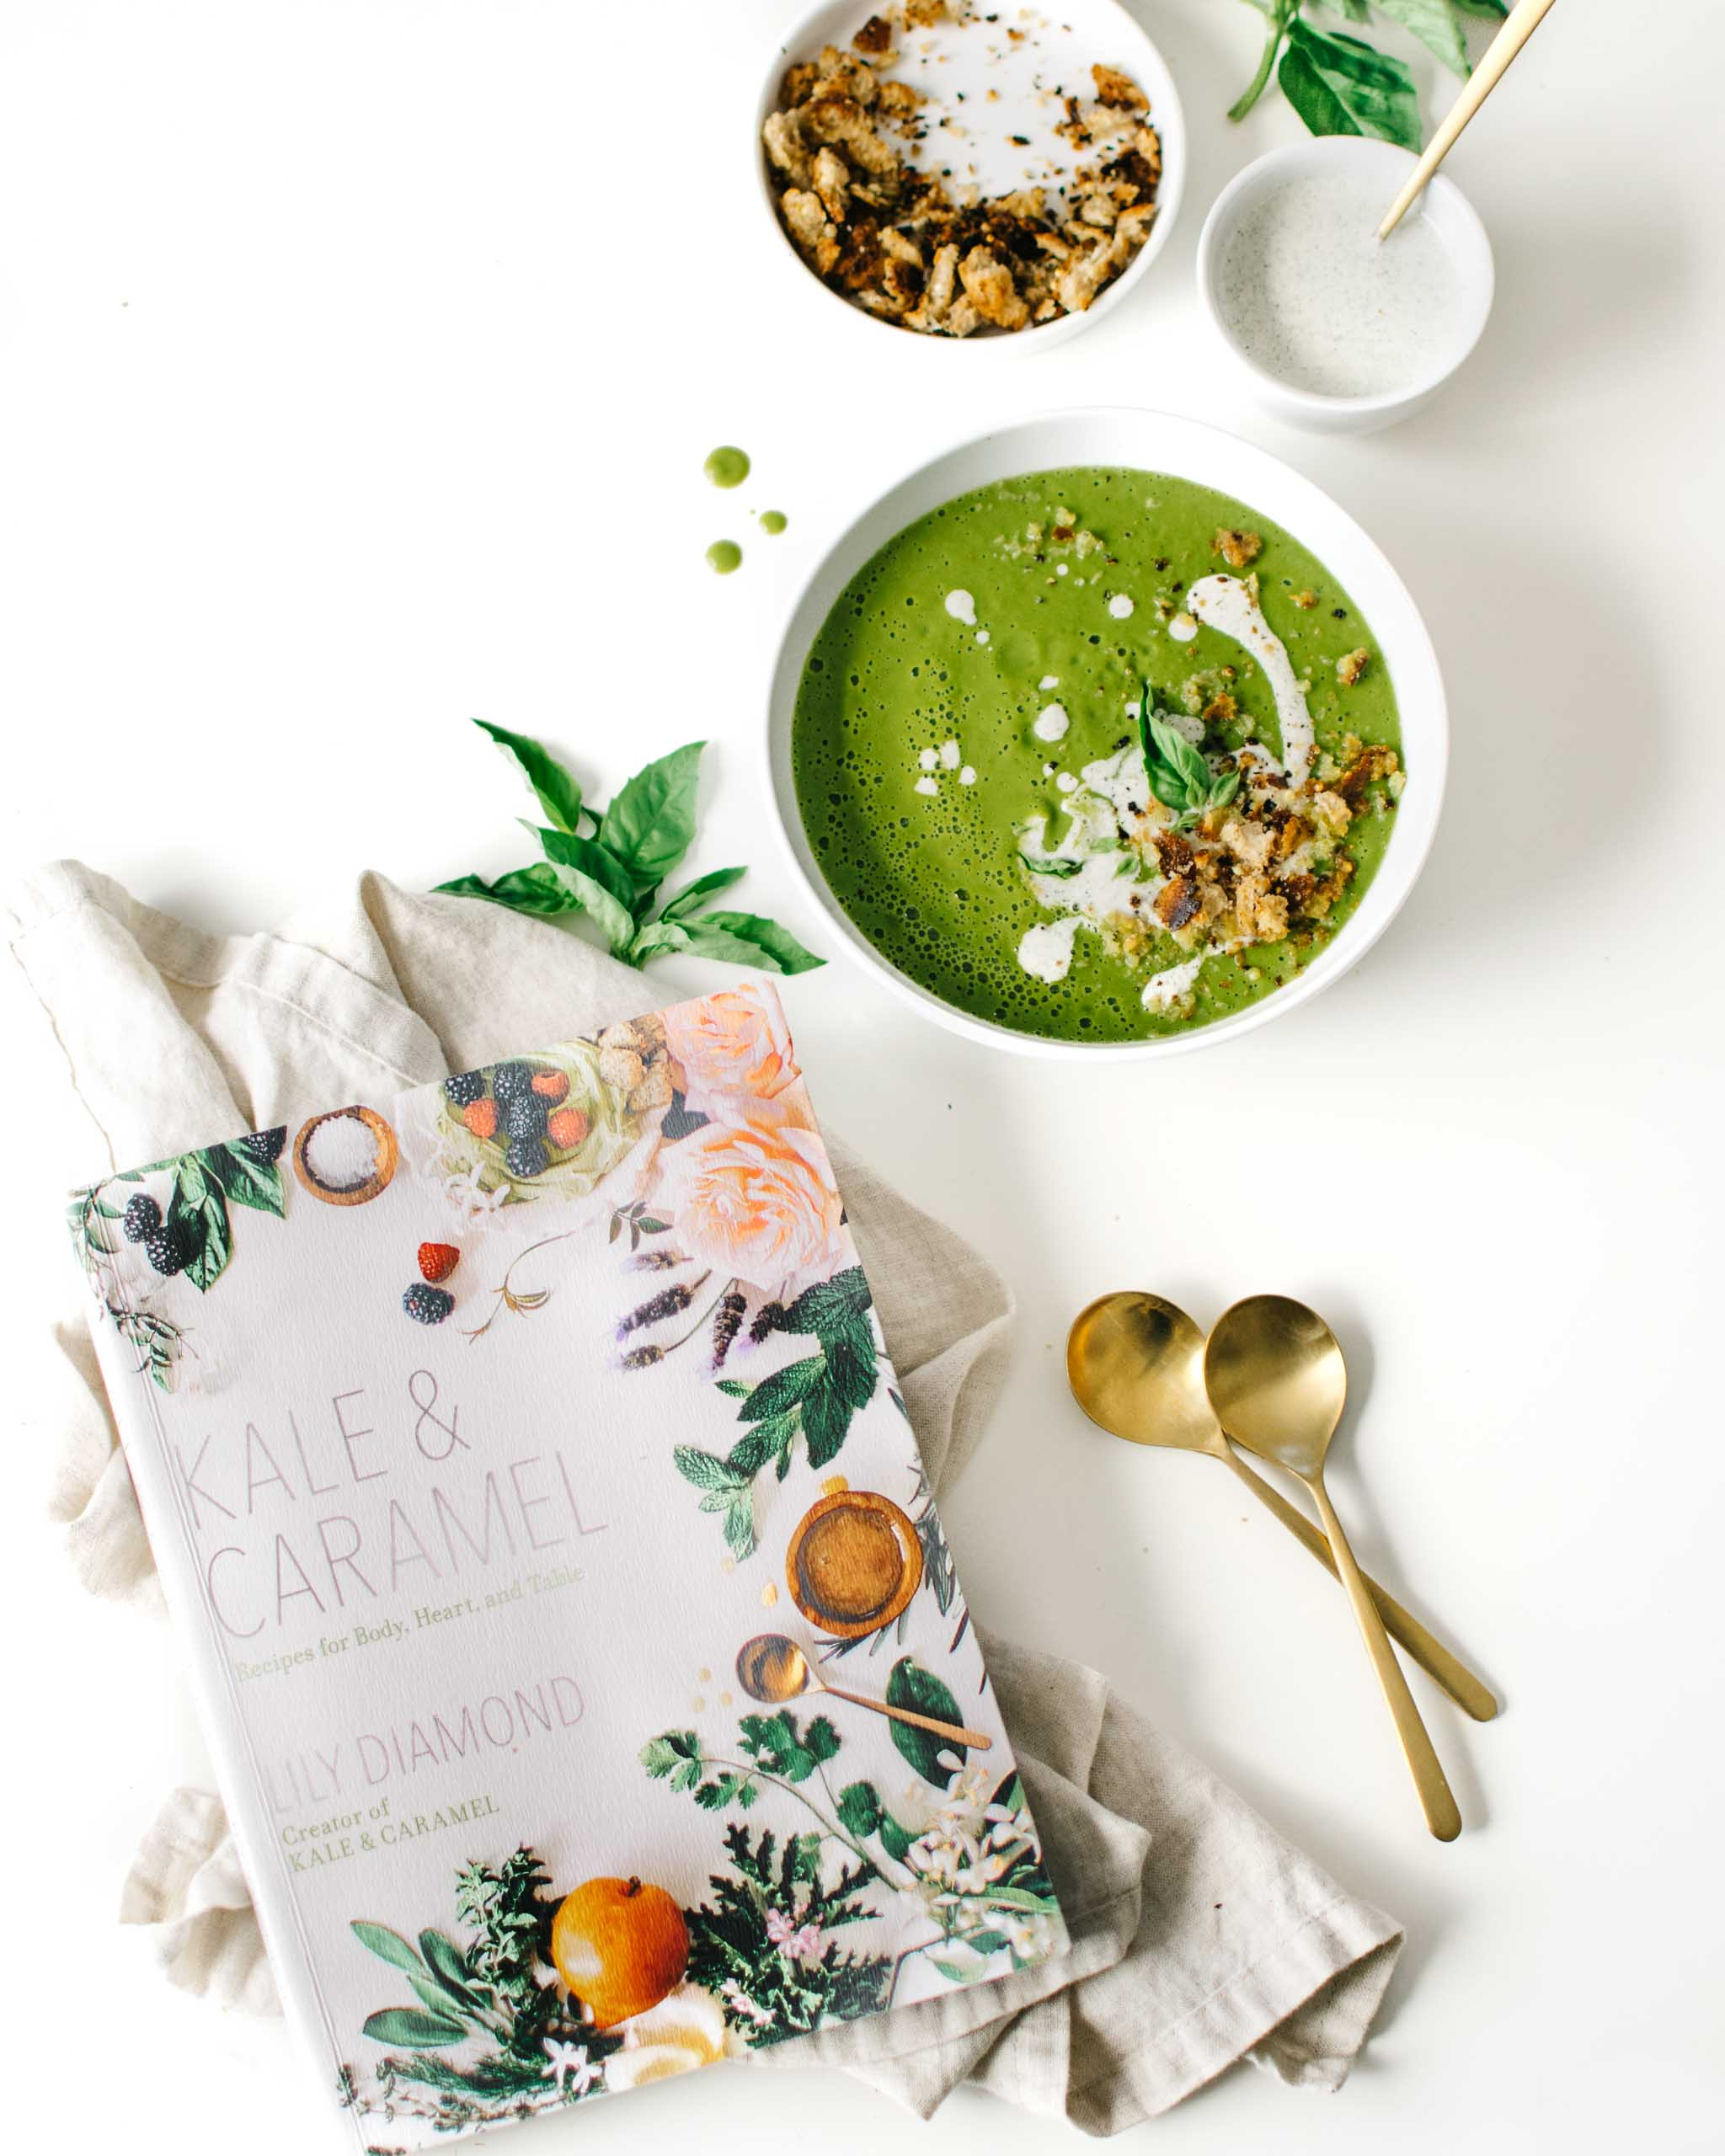 Zucchini Basil Soup from Kale & Caramel: Recipes for Body, Heart, and Table